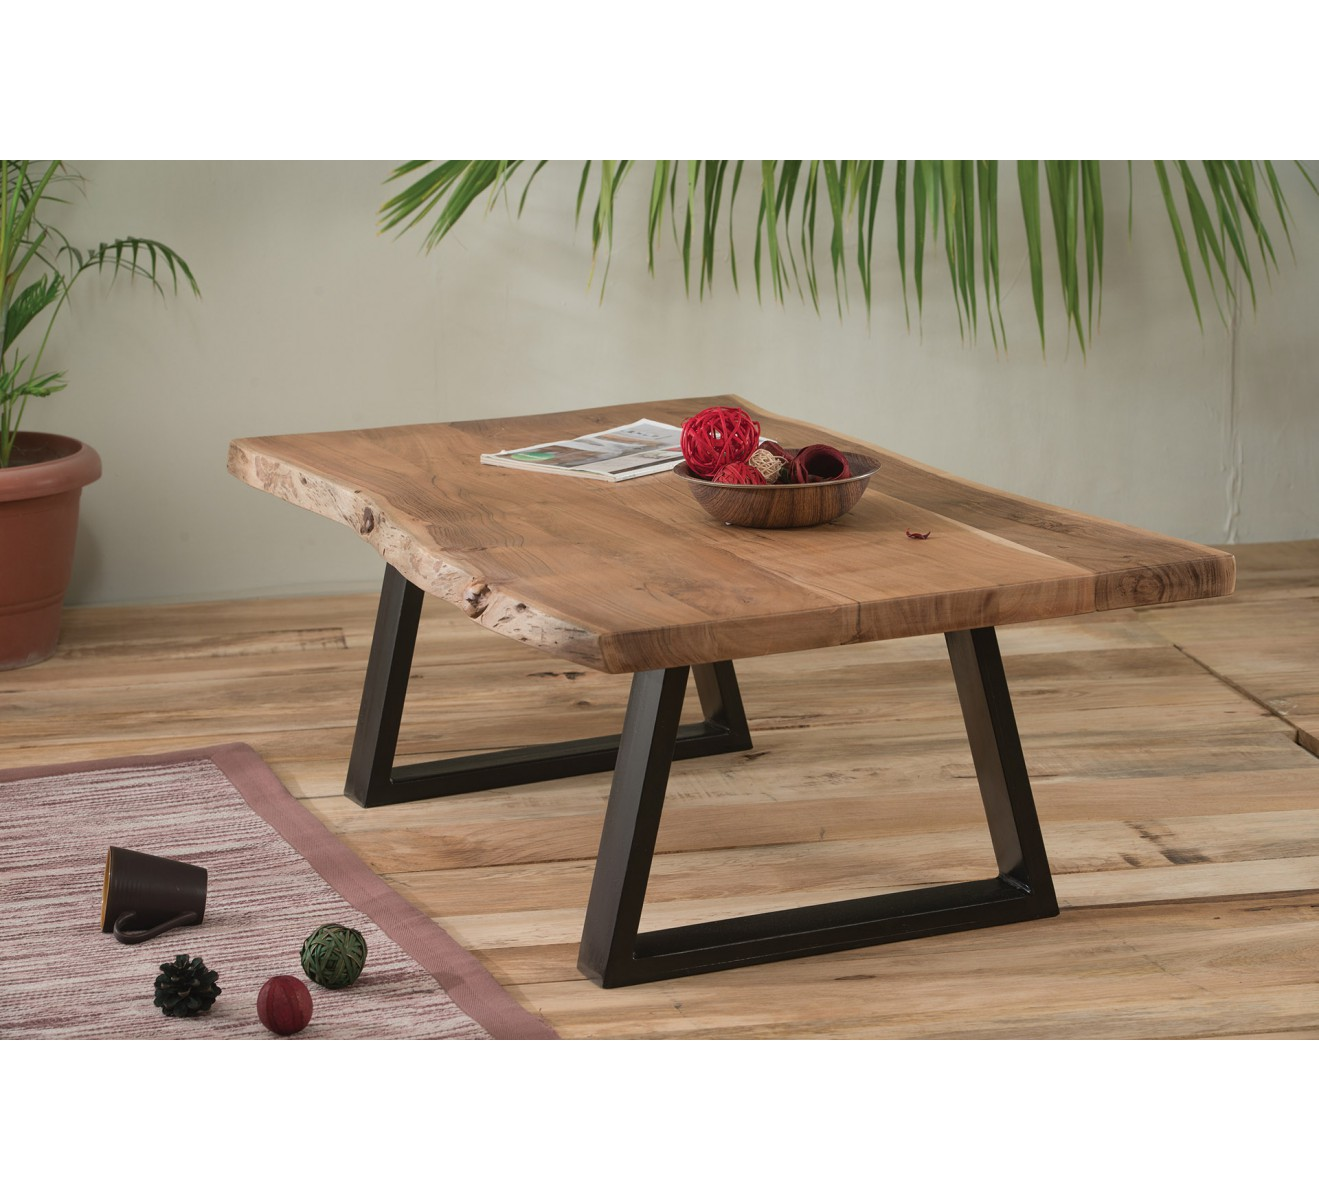 Table basse naturel m tal et bois 39 zen 39 - Table basse en bois naturel ...